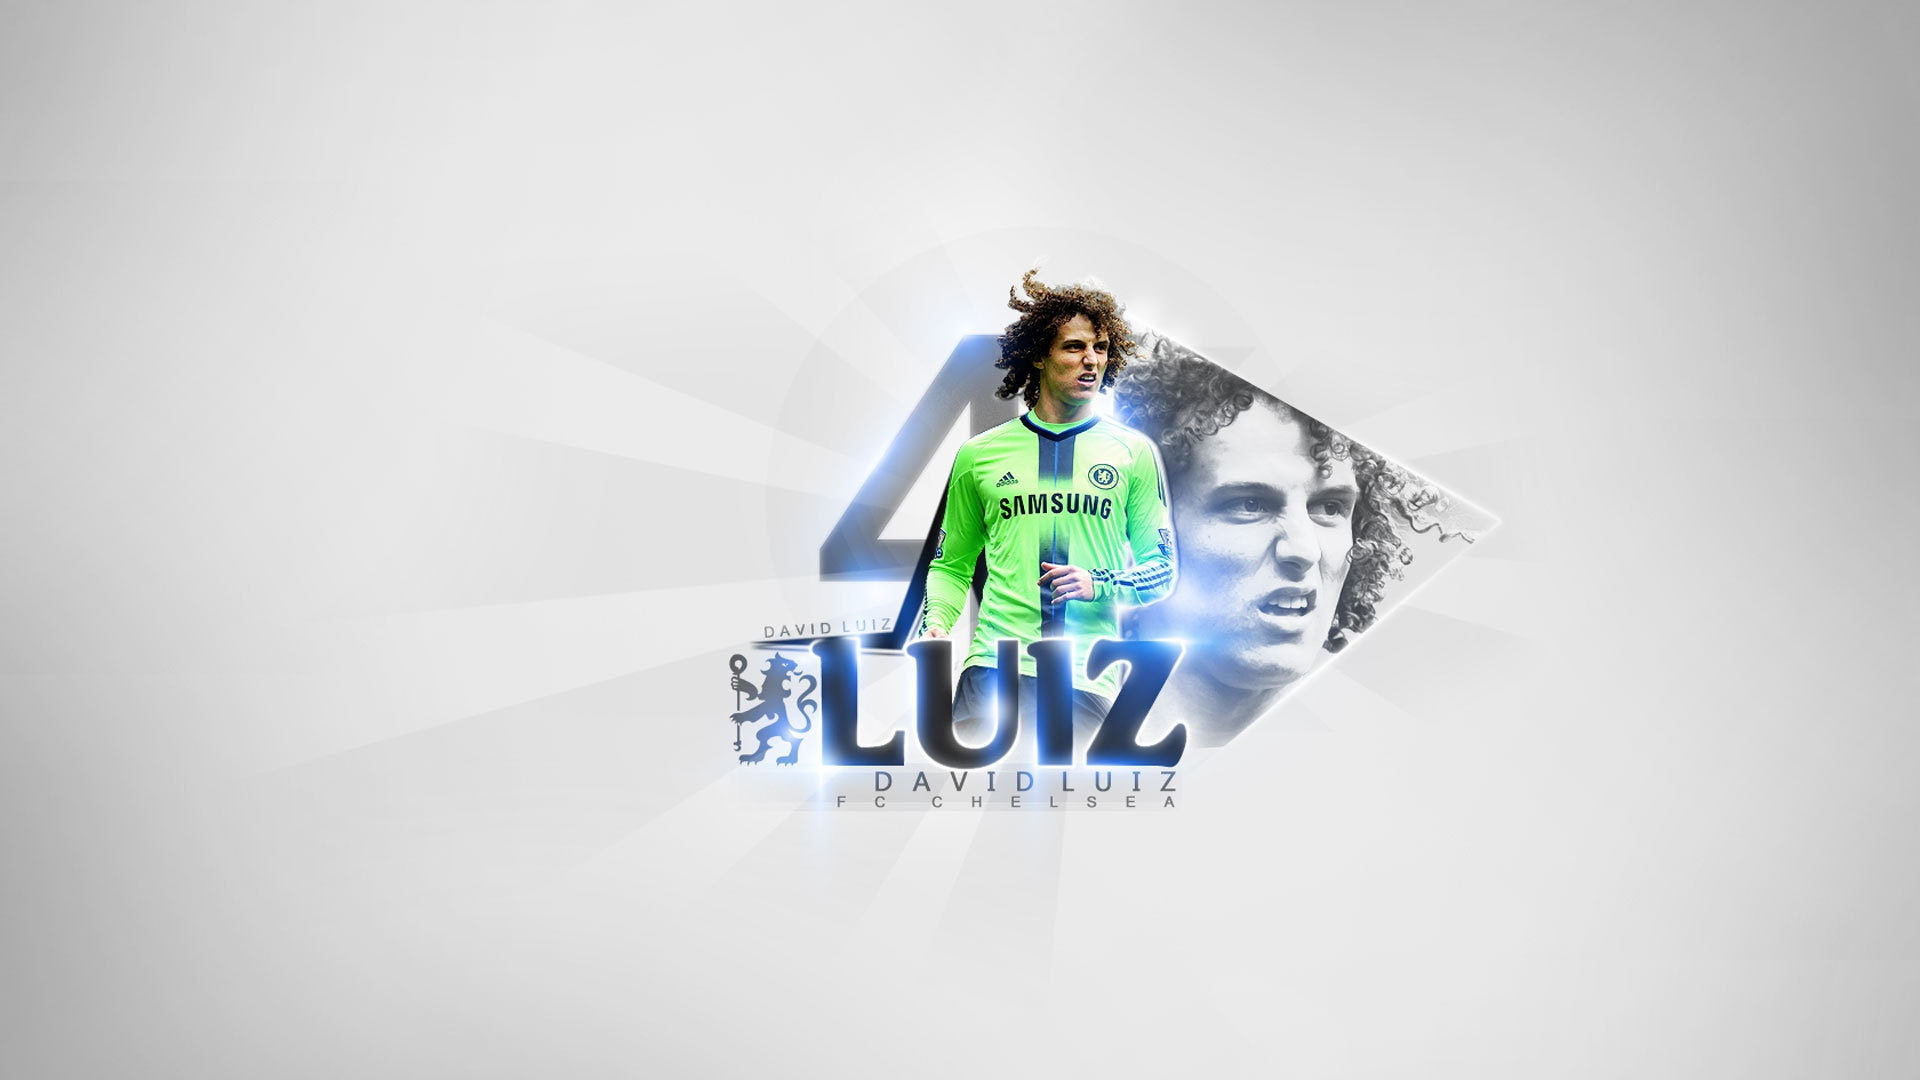 Download Wallpaper 1920x1080 David Luiz, Chelsea